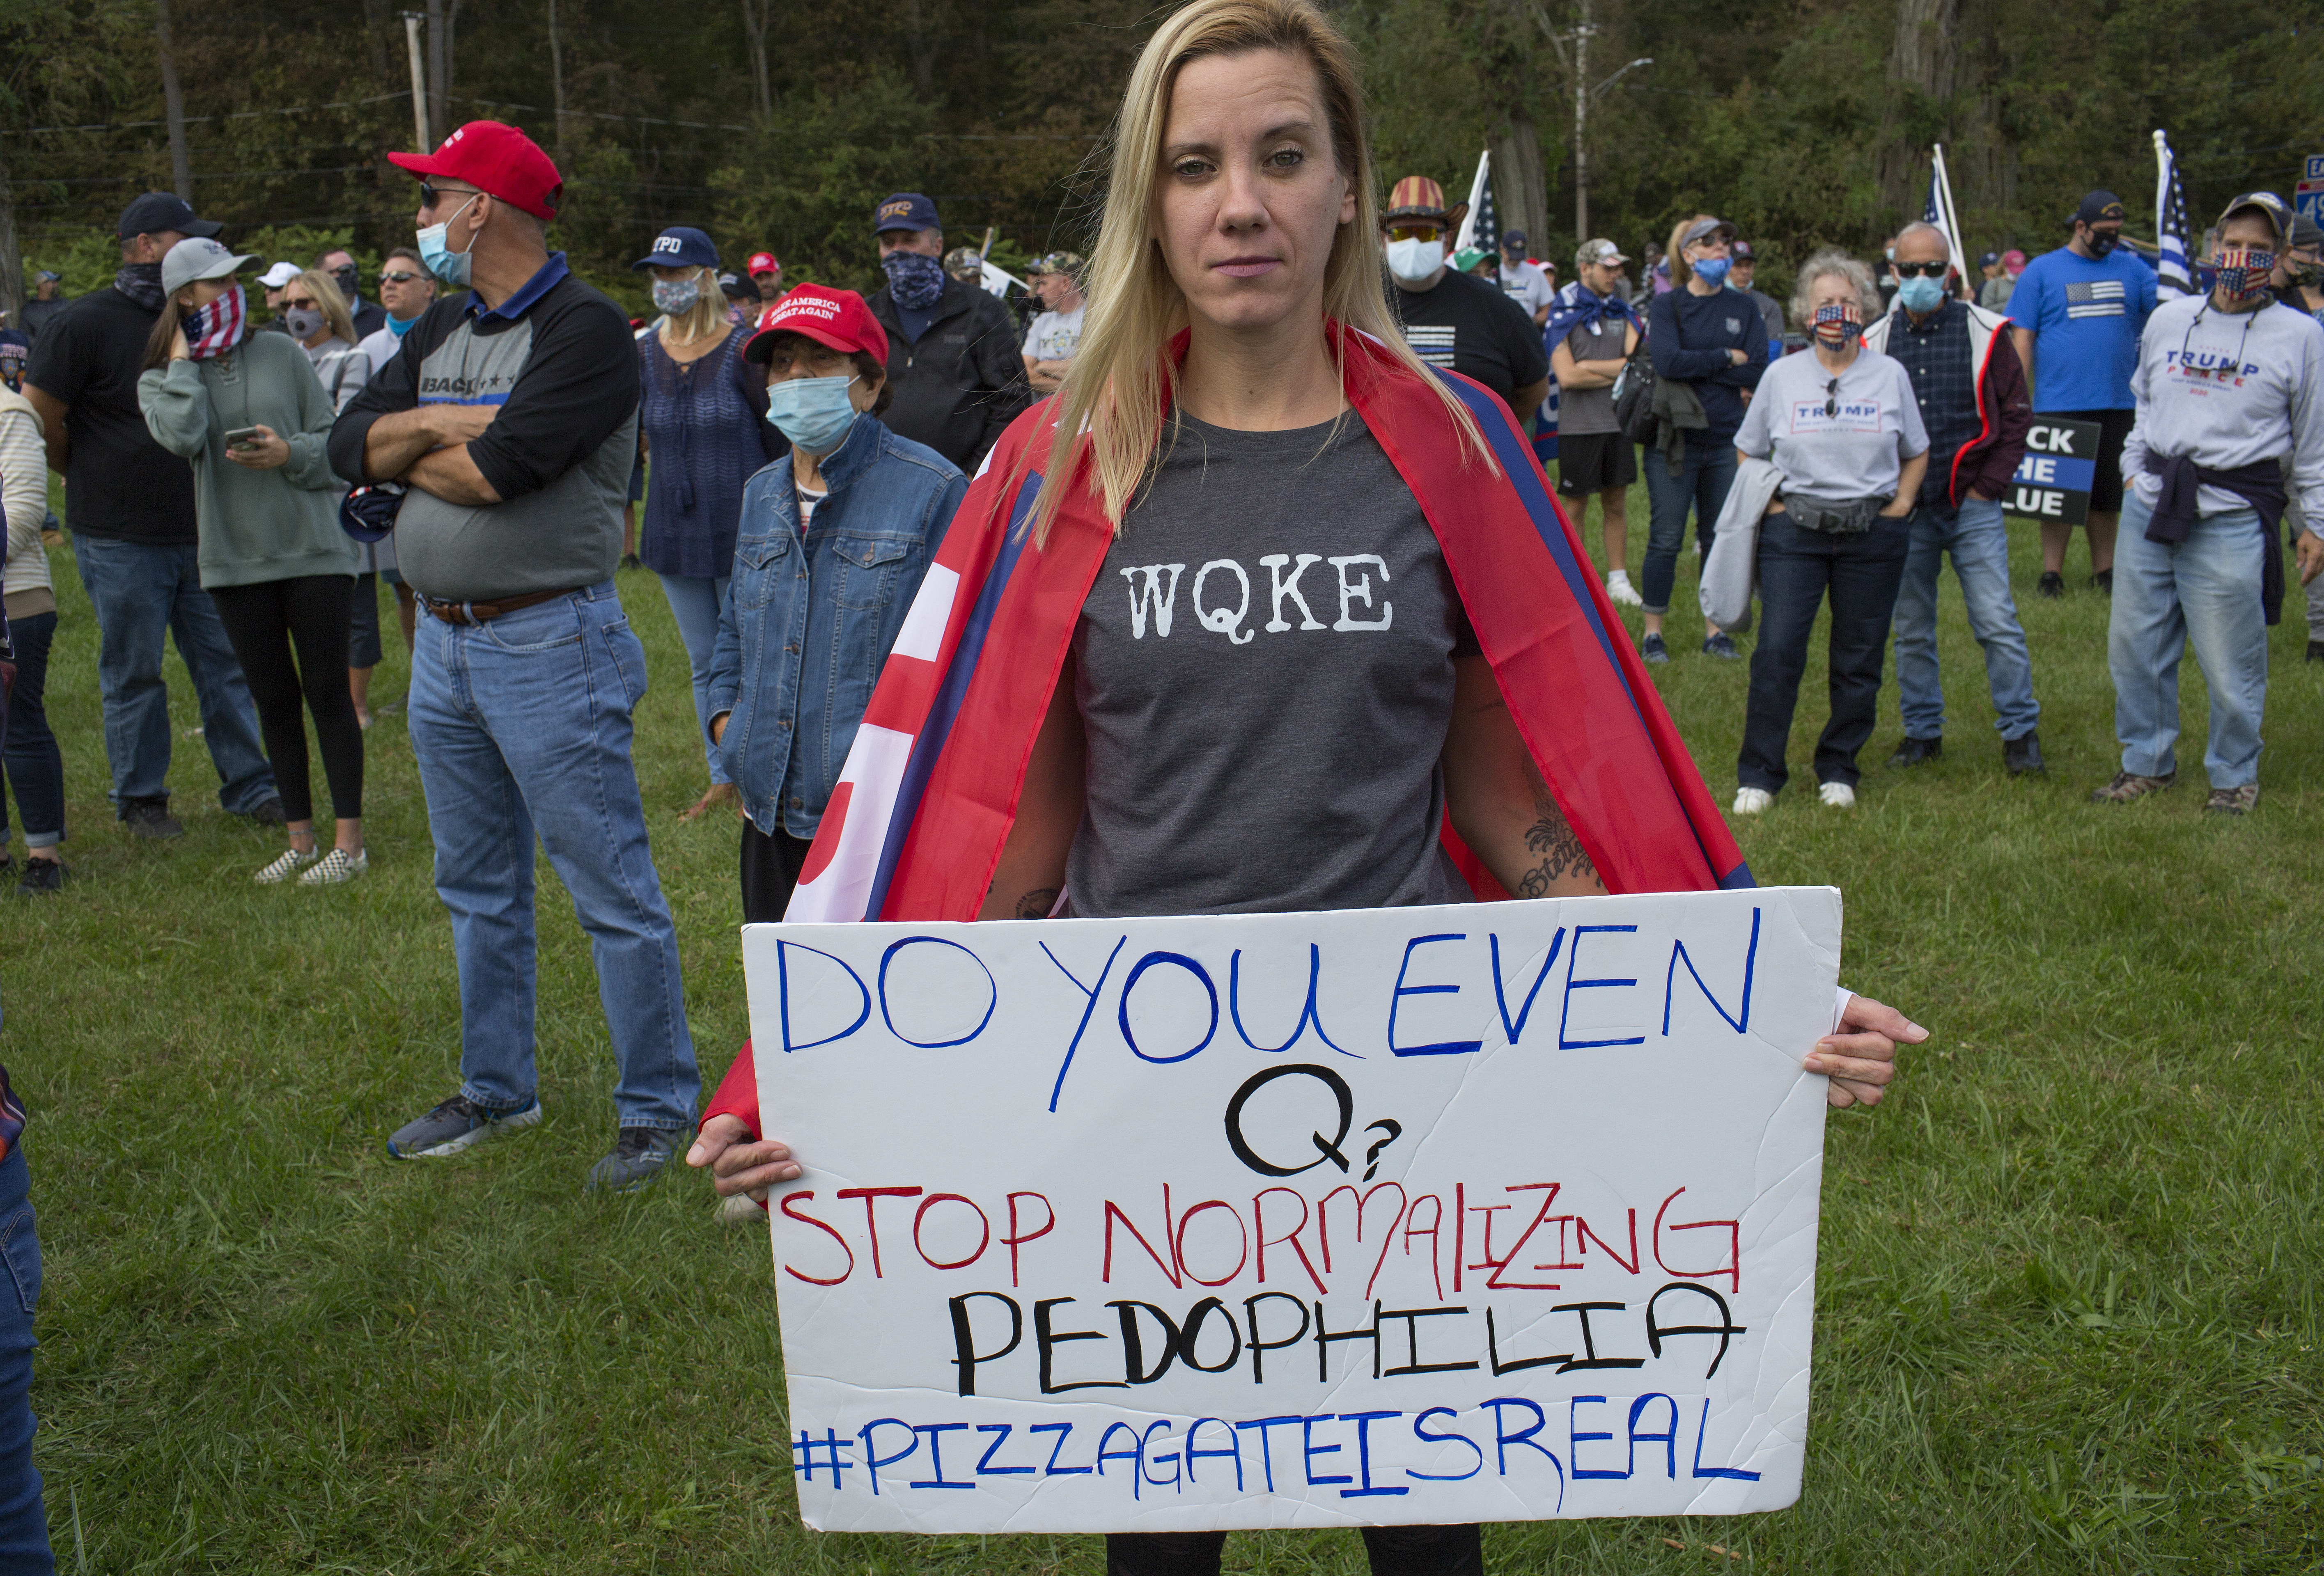 """A QAnon supporter wearing a shirt that reads """"WQKE"""" and carrying a sign that reads, """"Do you even Q? Stop normalizing pedophilia #pizzagateisreal."""""""